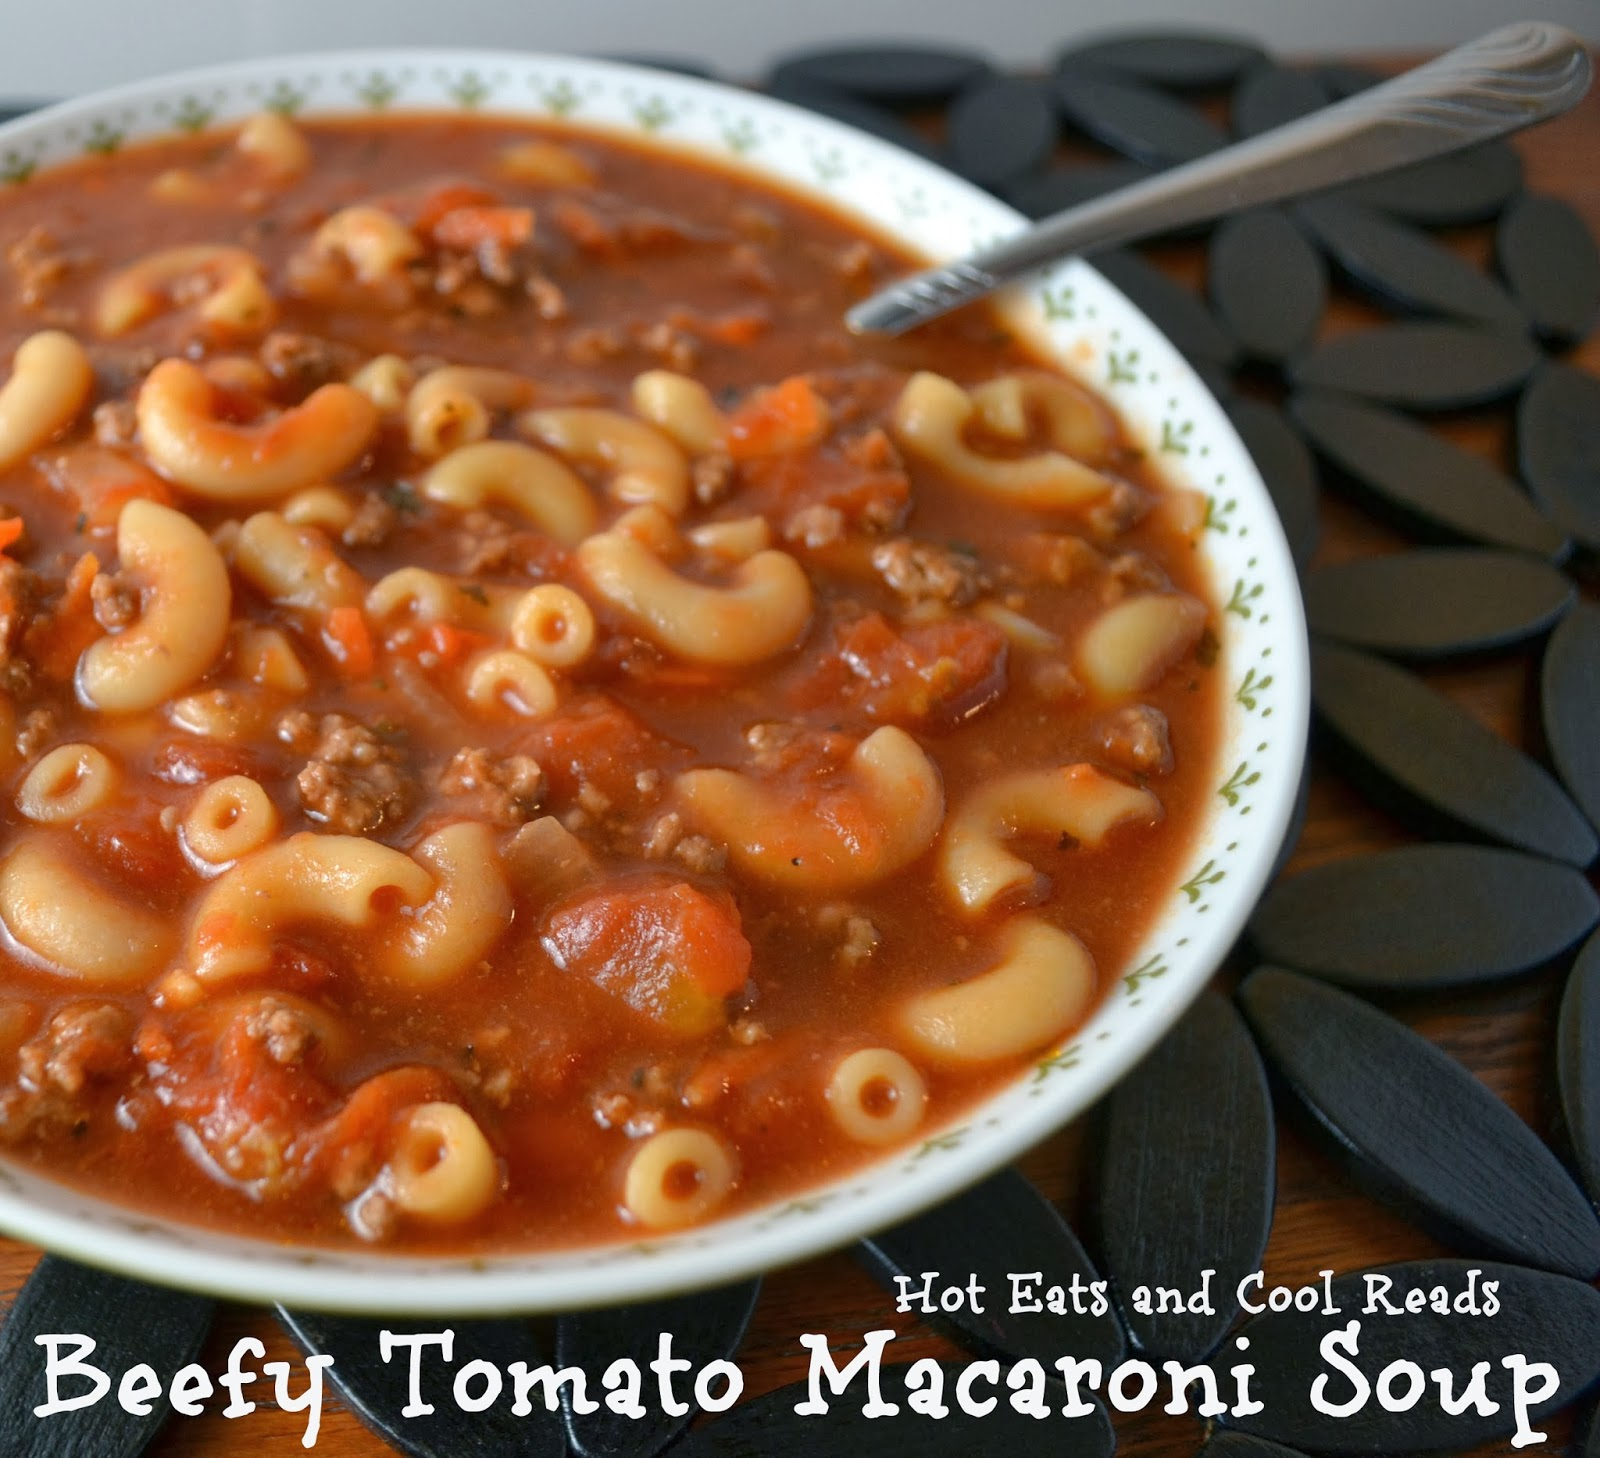 Hot Eats and Cool Reads: Beefy Tomato Macaroni Soup Recipe ...